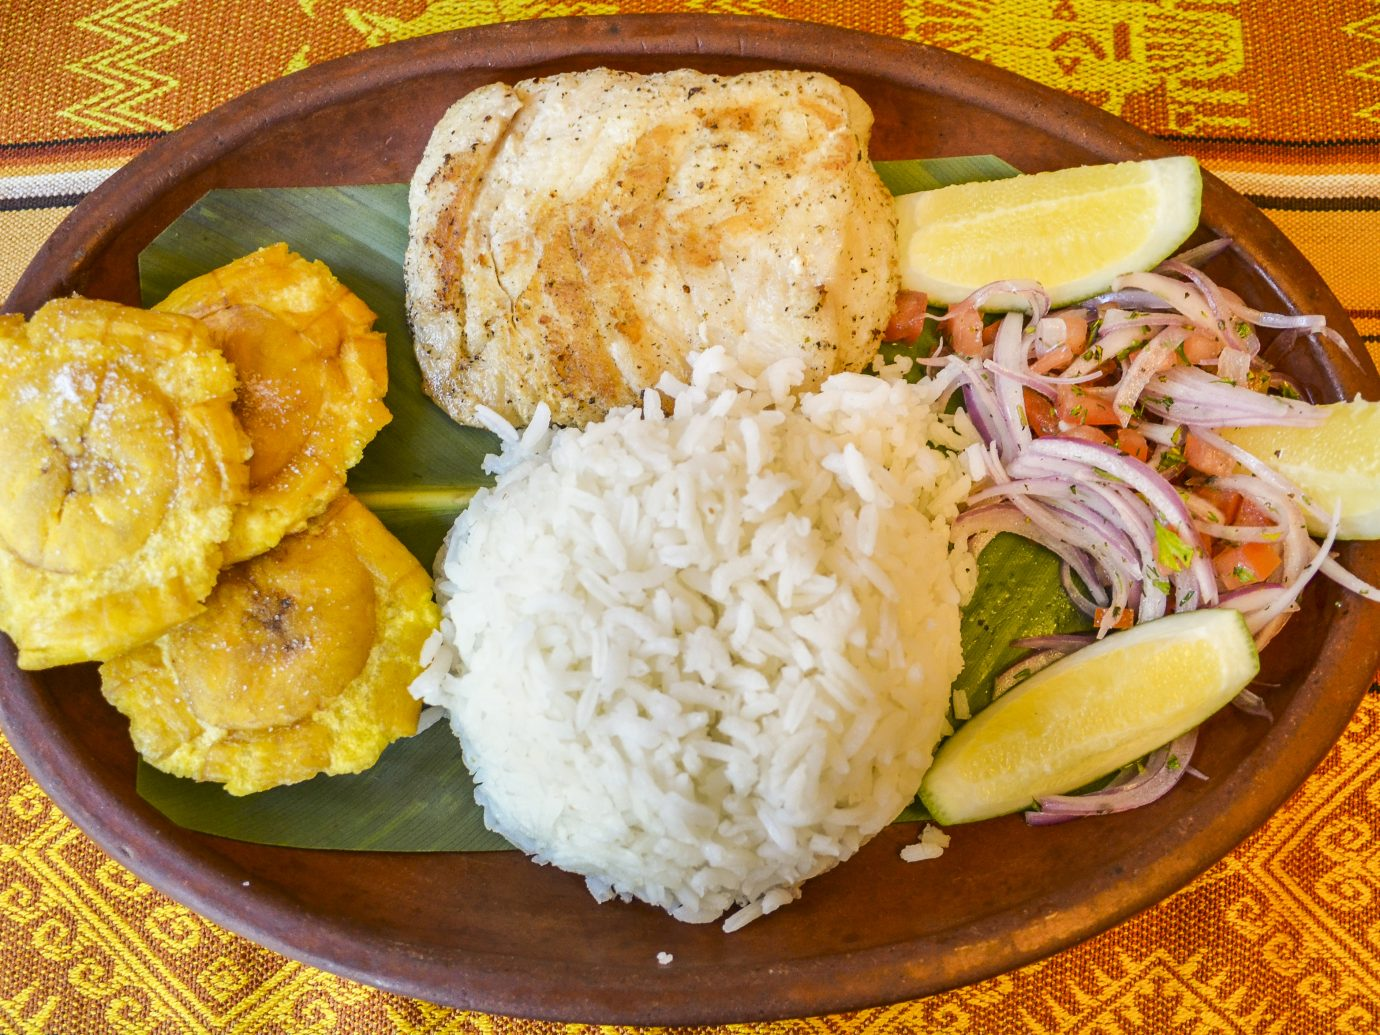 Llapingachos are fried potato cakes that originated in Ecuador. They are usually served with a peanut sauce. The dish is similar to Colombian arepas